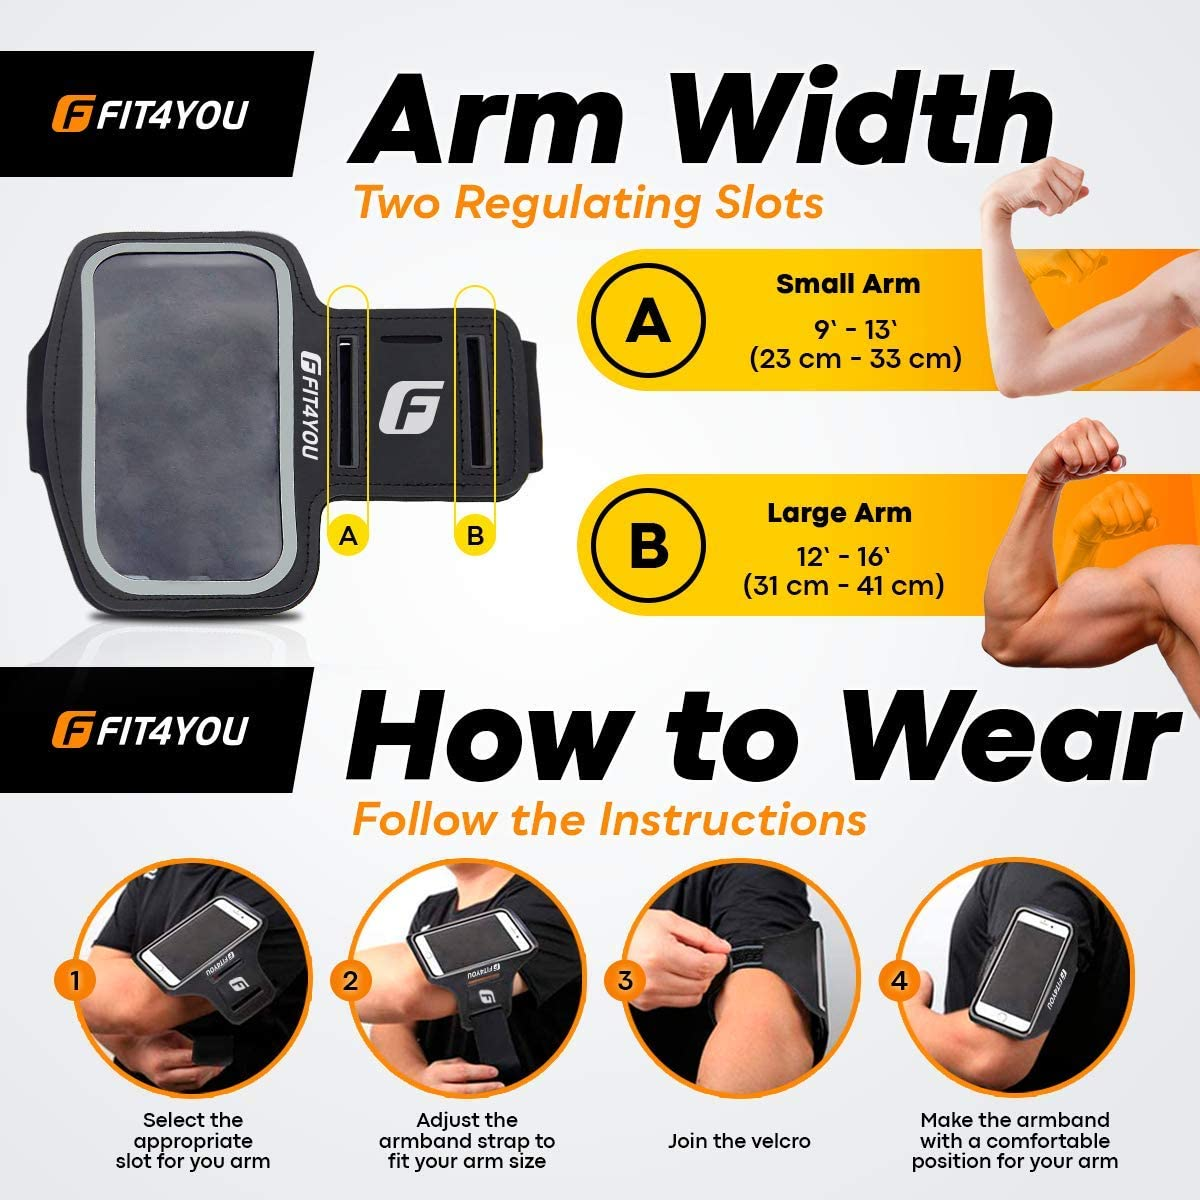 Running Cell Phone Holder for iPhone 12, 12 Pro, 11, X, Xs, 8, 7, 6, 6S, Samsung Galaxy S20, S10, S9, S8, S7, S6, Edge, Plus & LG, Huawei, Google, Sony - Water Resistant Armband Case for Running